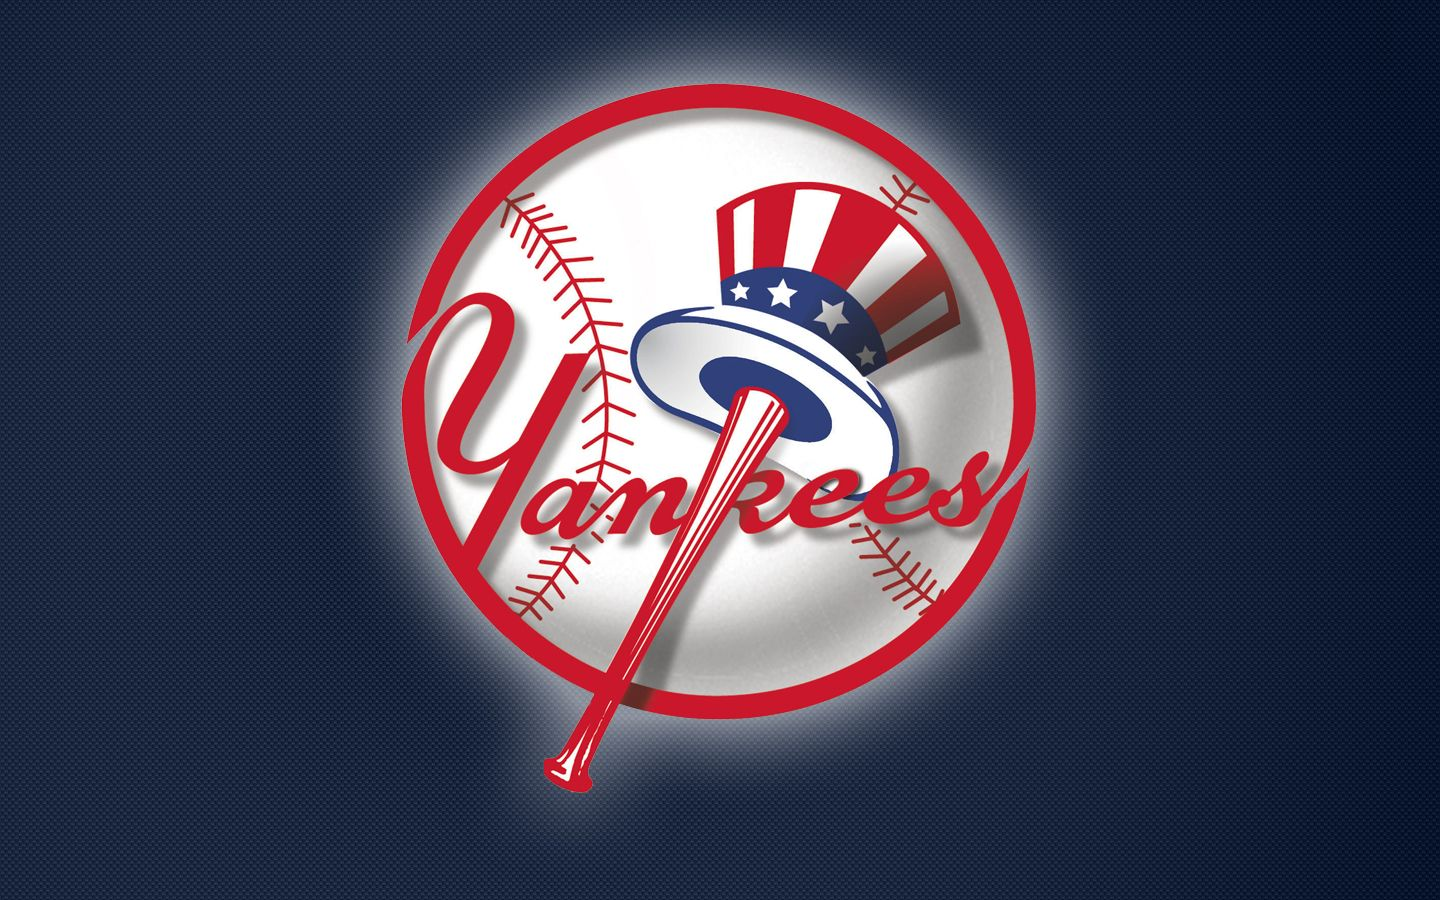 New York Yankees New York Yankees Logo Yankees Logo New York Yankees